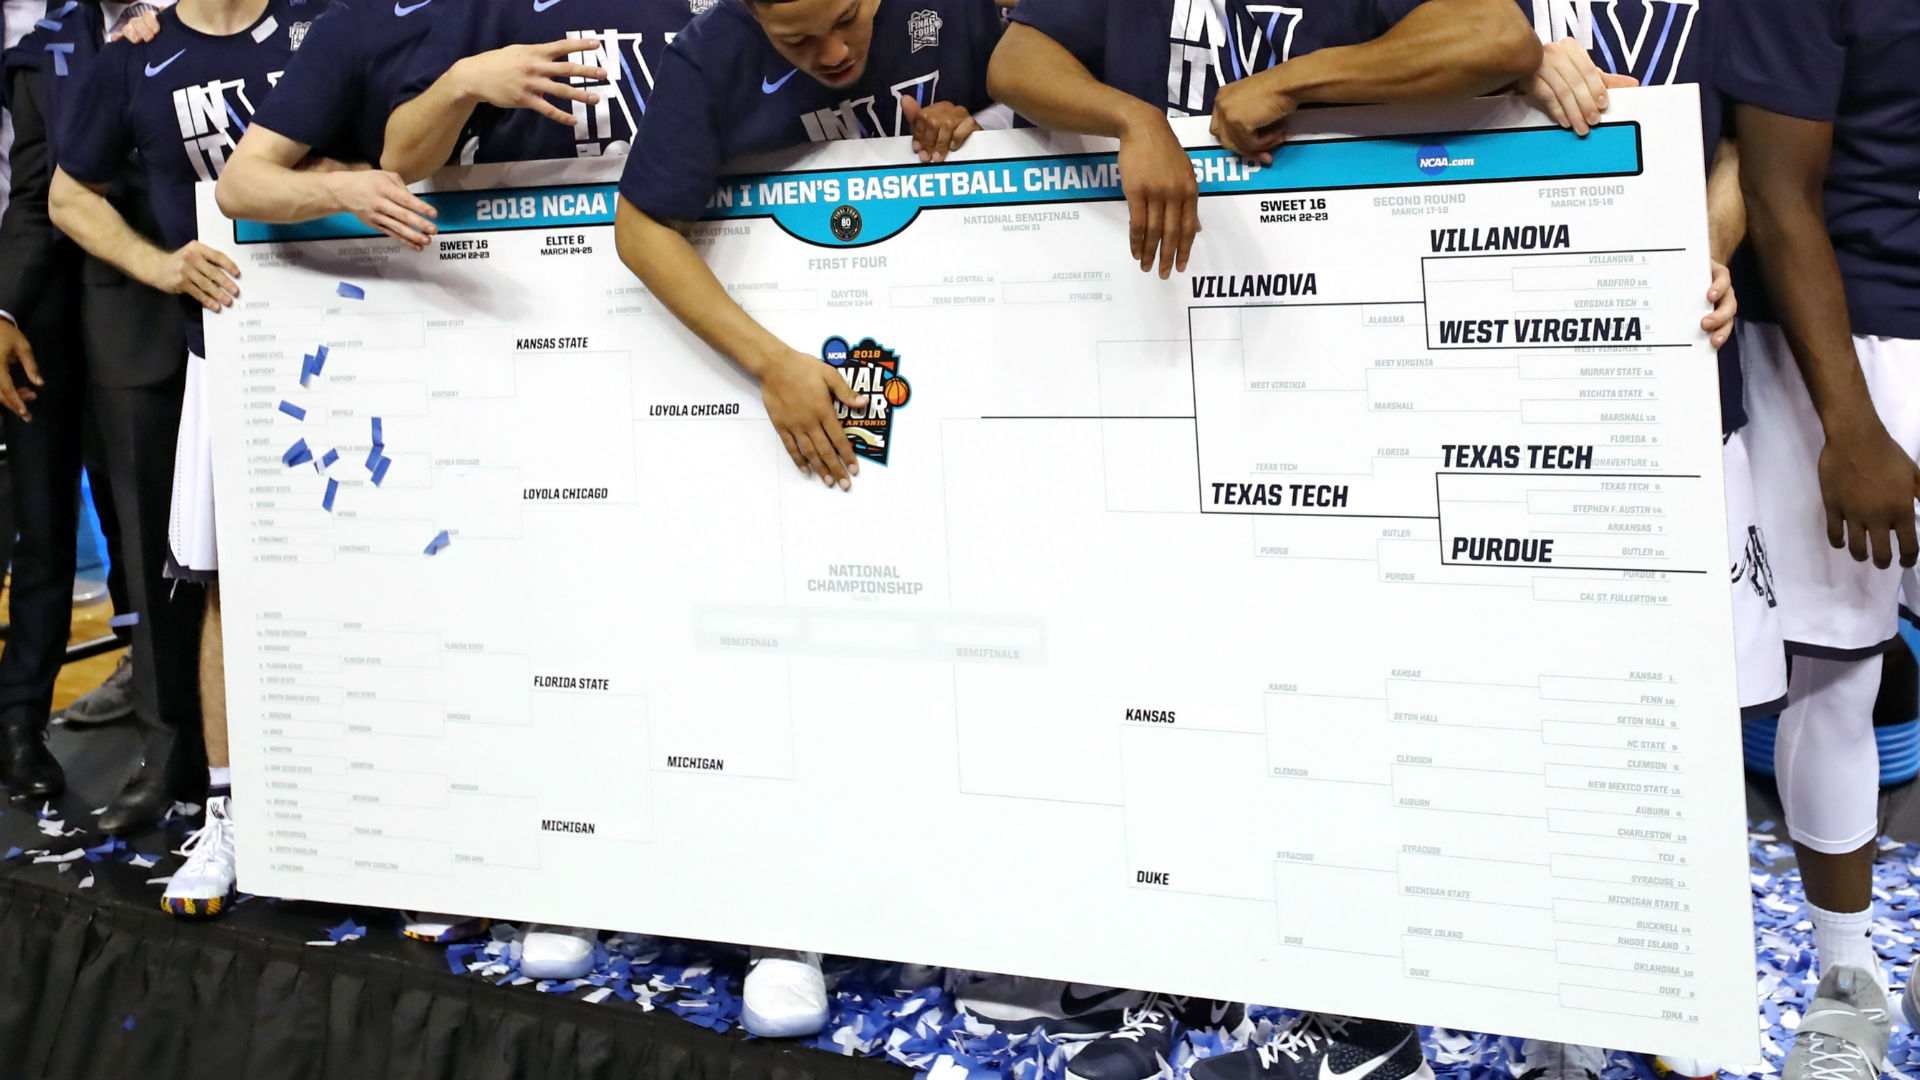 Best March Madness bracket of all time: What is the longest an NCAA bracket stayed perfect?